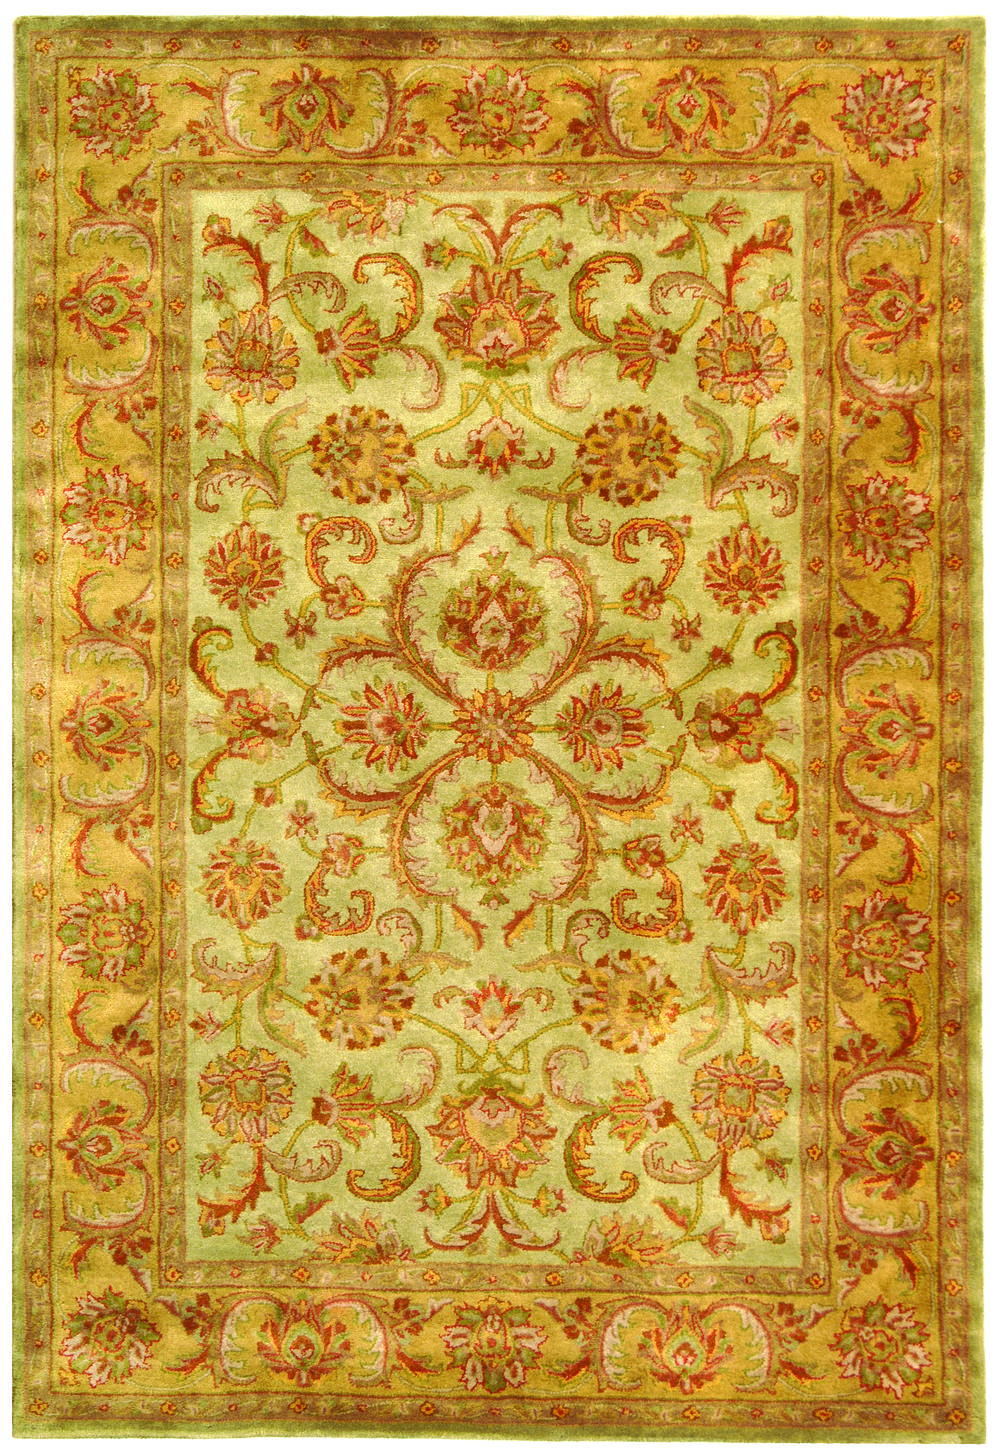 Safavieh Heritage Hg811a Green And Gold Area Rug Free